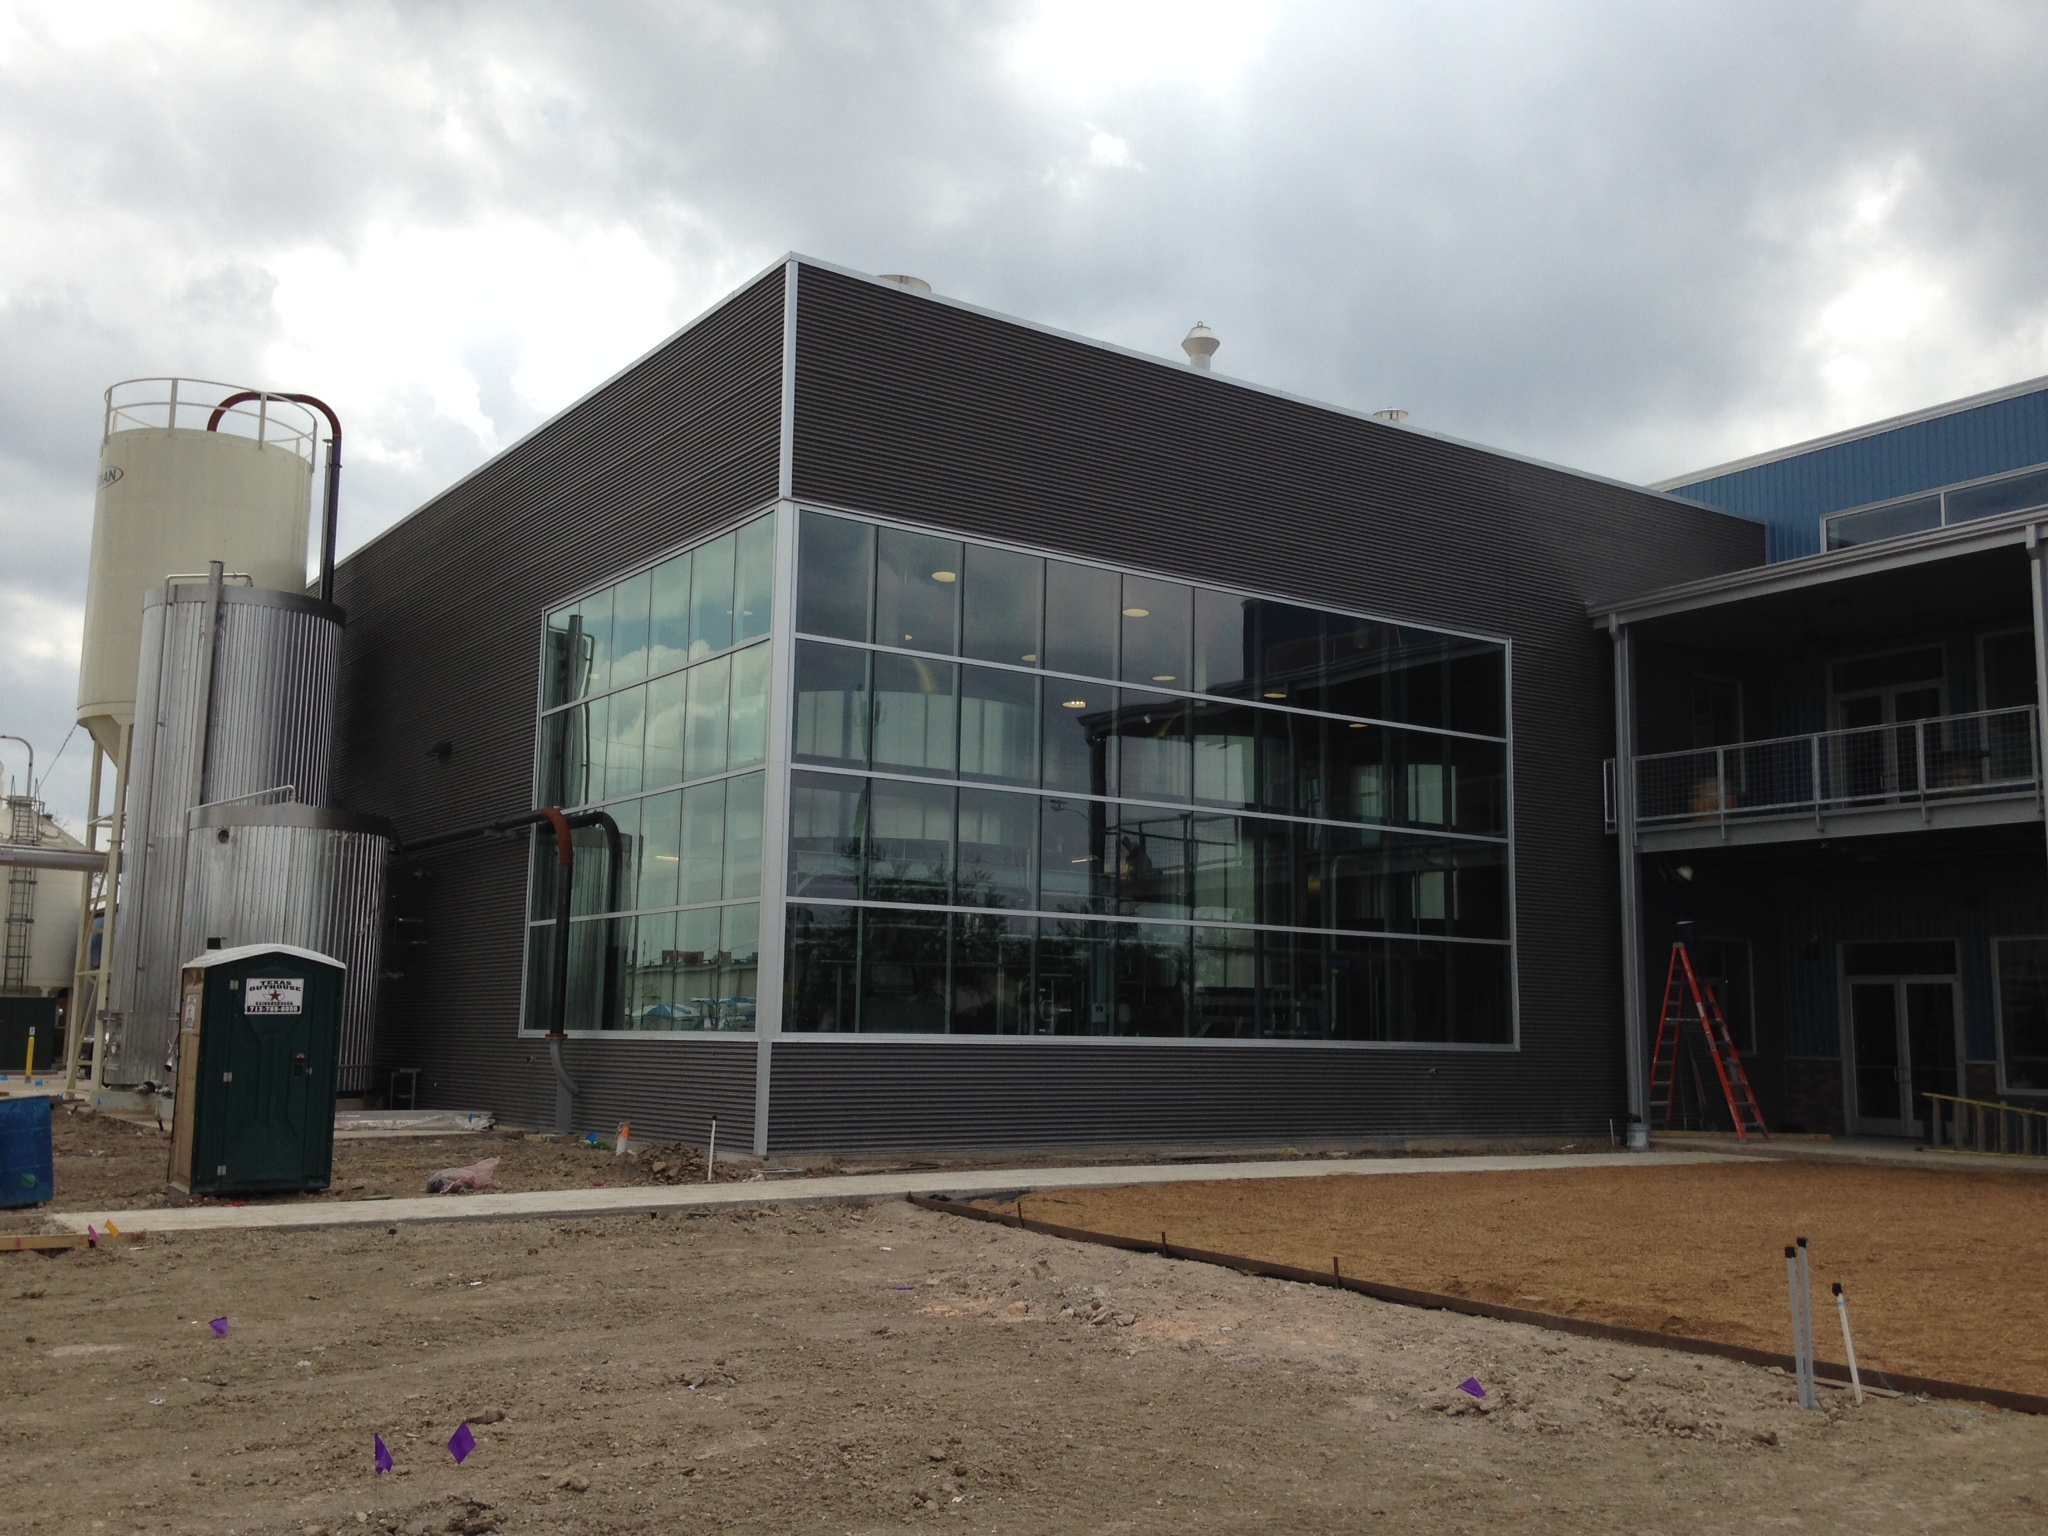 Whirlwind Steel Completes 19000 SquareFoot Brewery